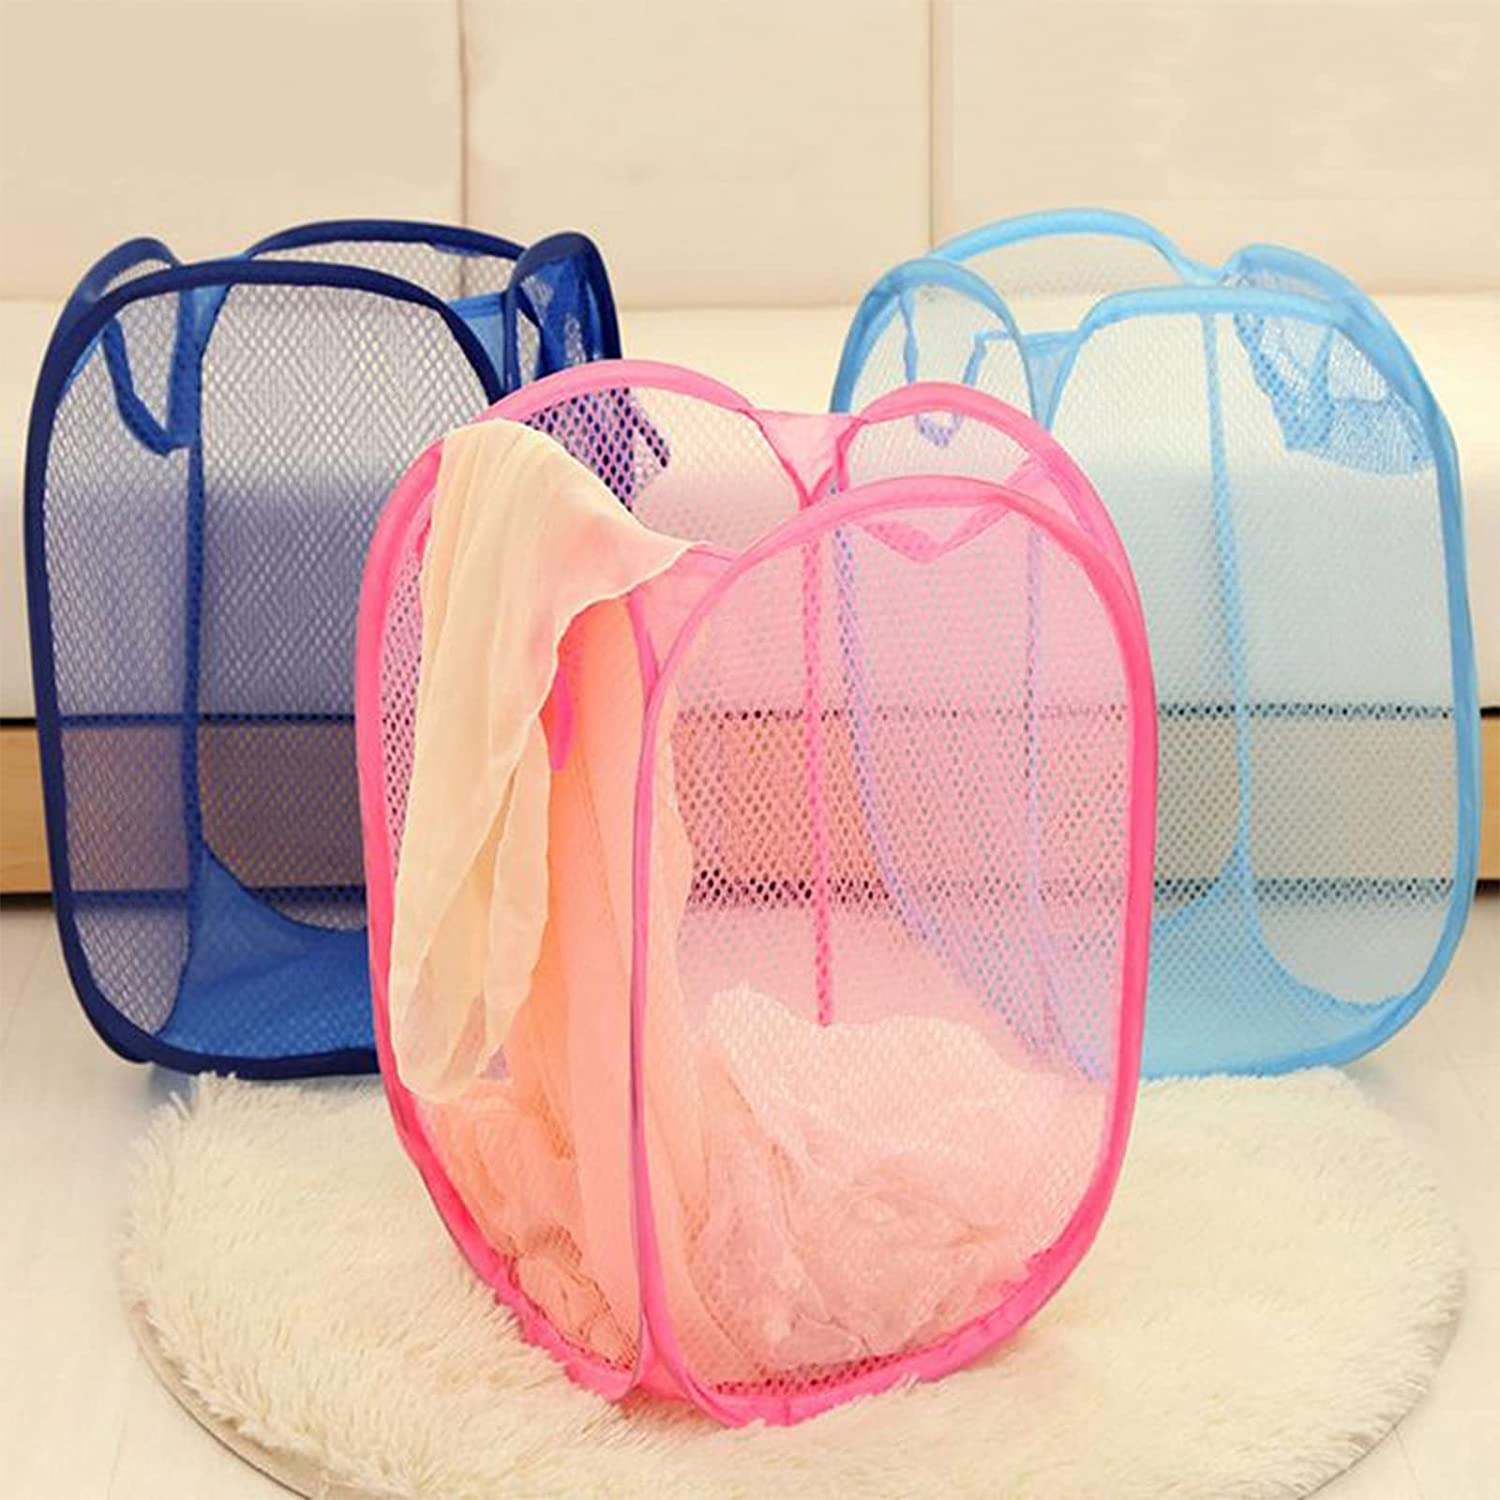 TRGCJGH Mesh Popup Laundry Max 68% OFF for Ranking integrated 1st place Basket Collapsible Hamper